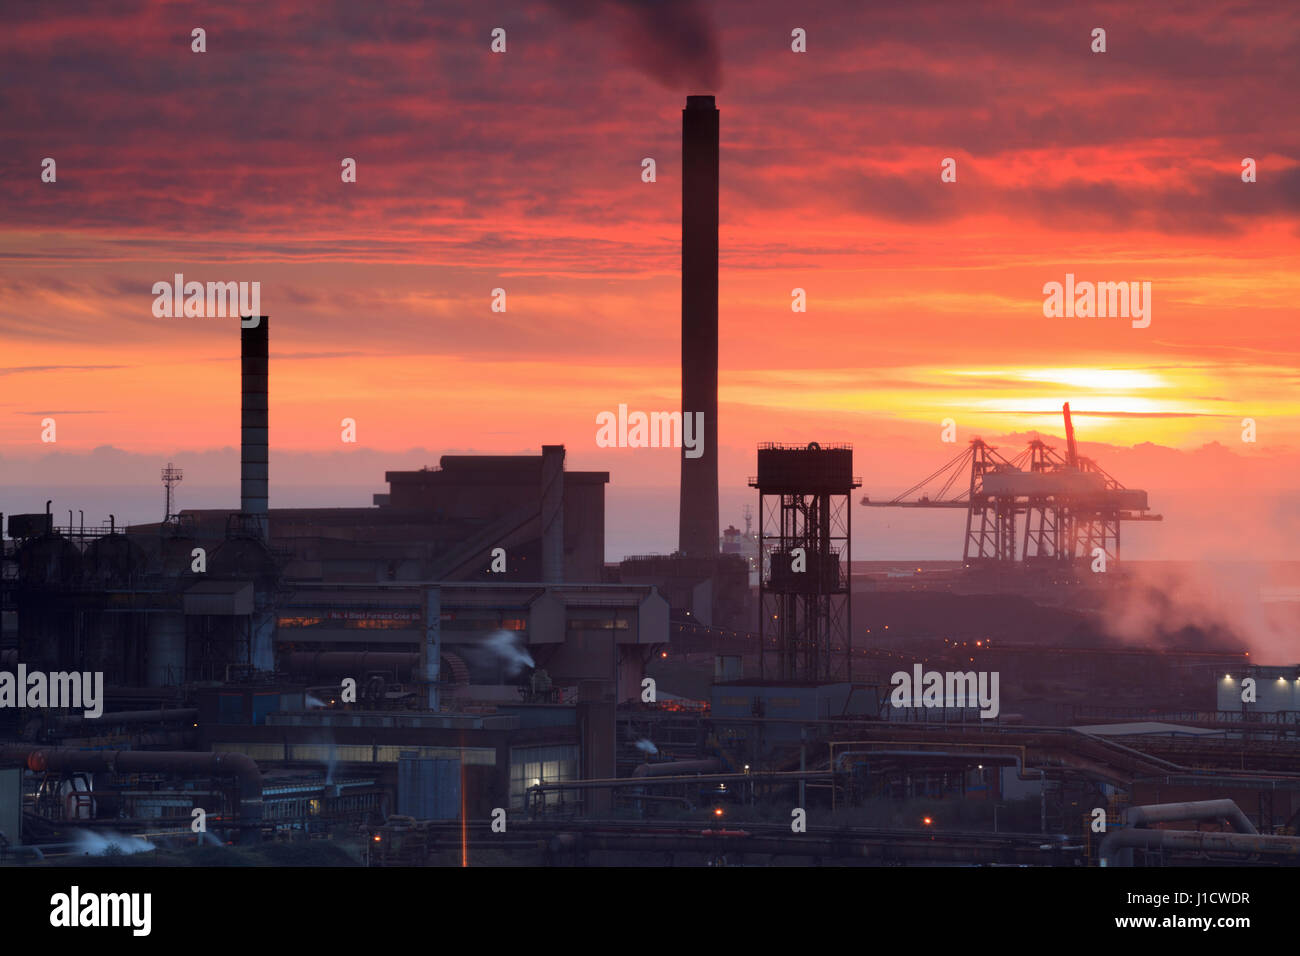 Sunset over Port Talbot Steel Works, South Wales, Wales, United Kingdom Stock Photo